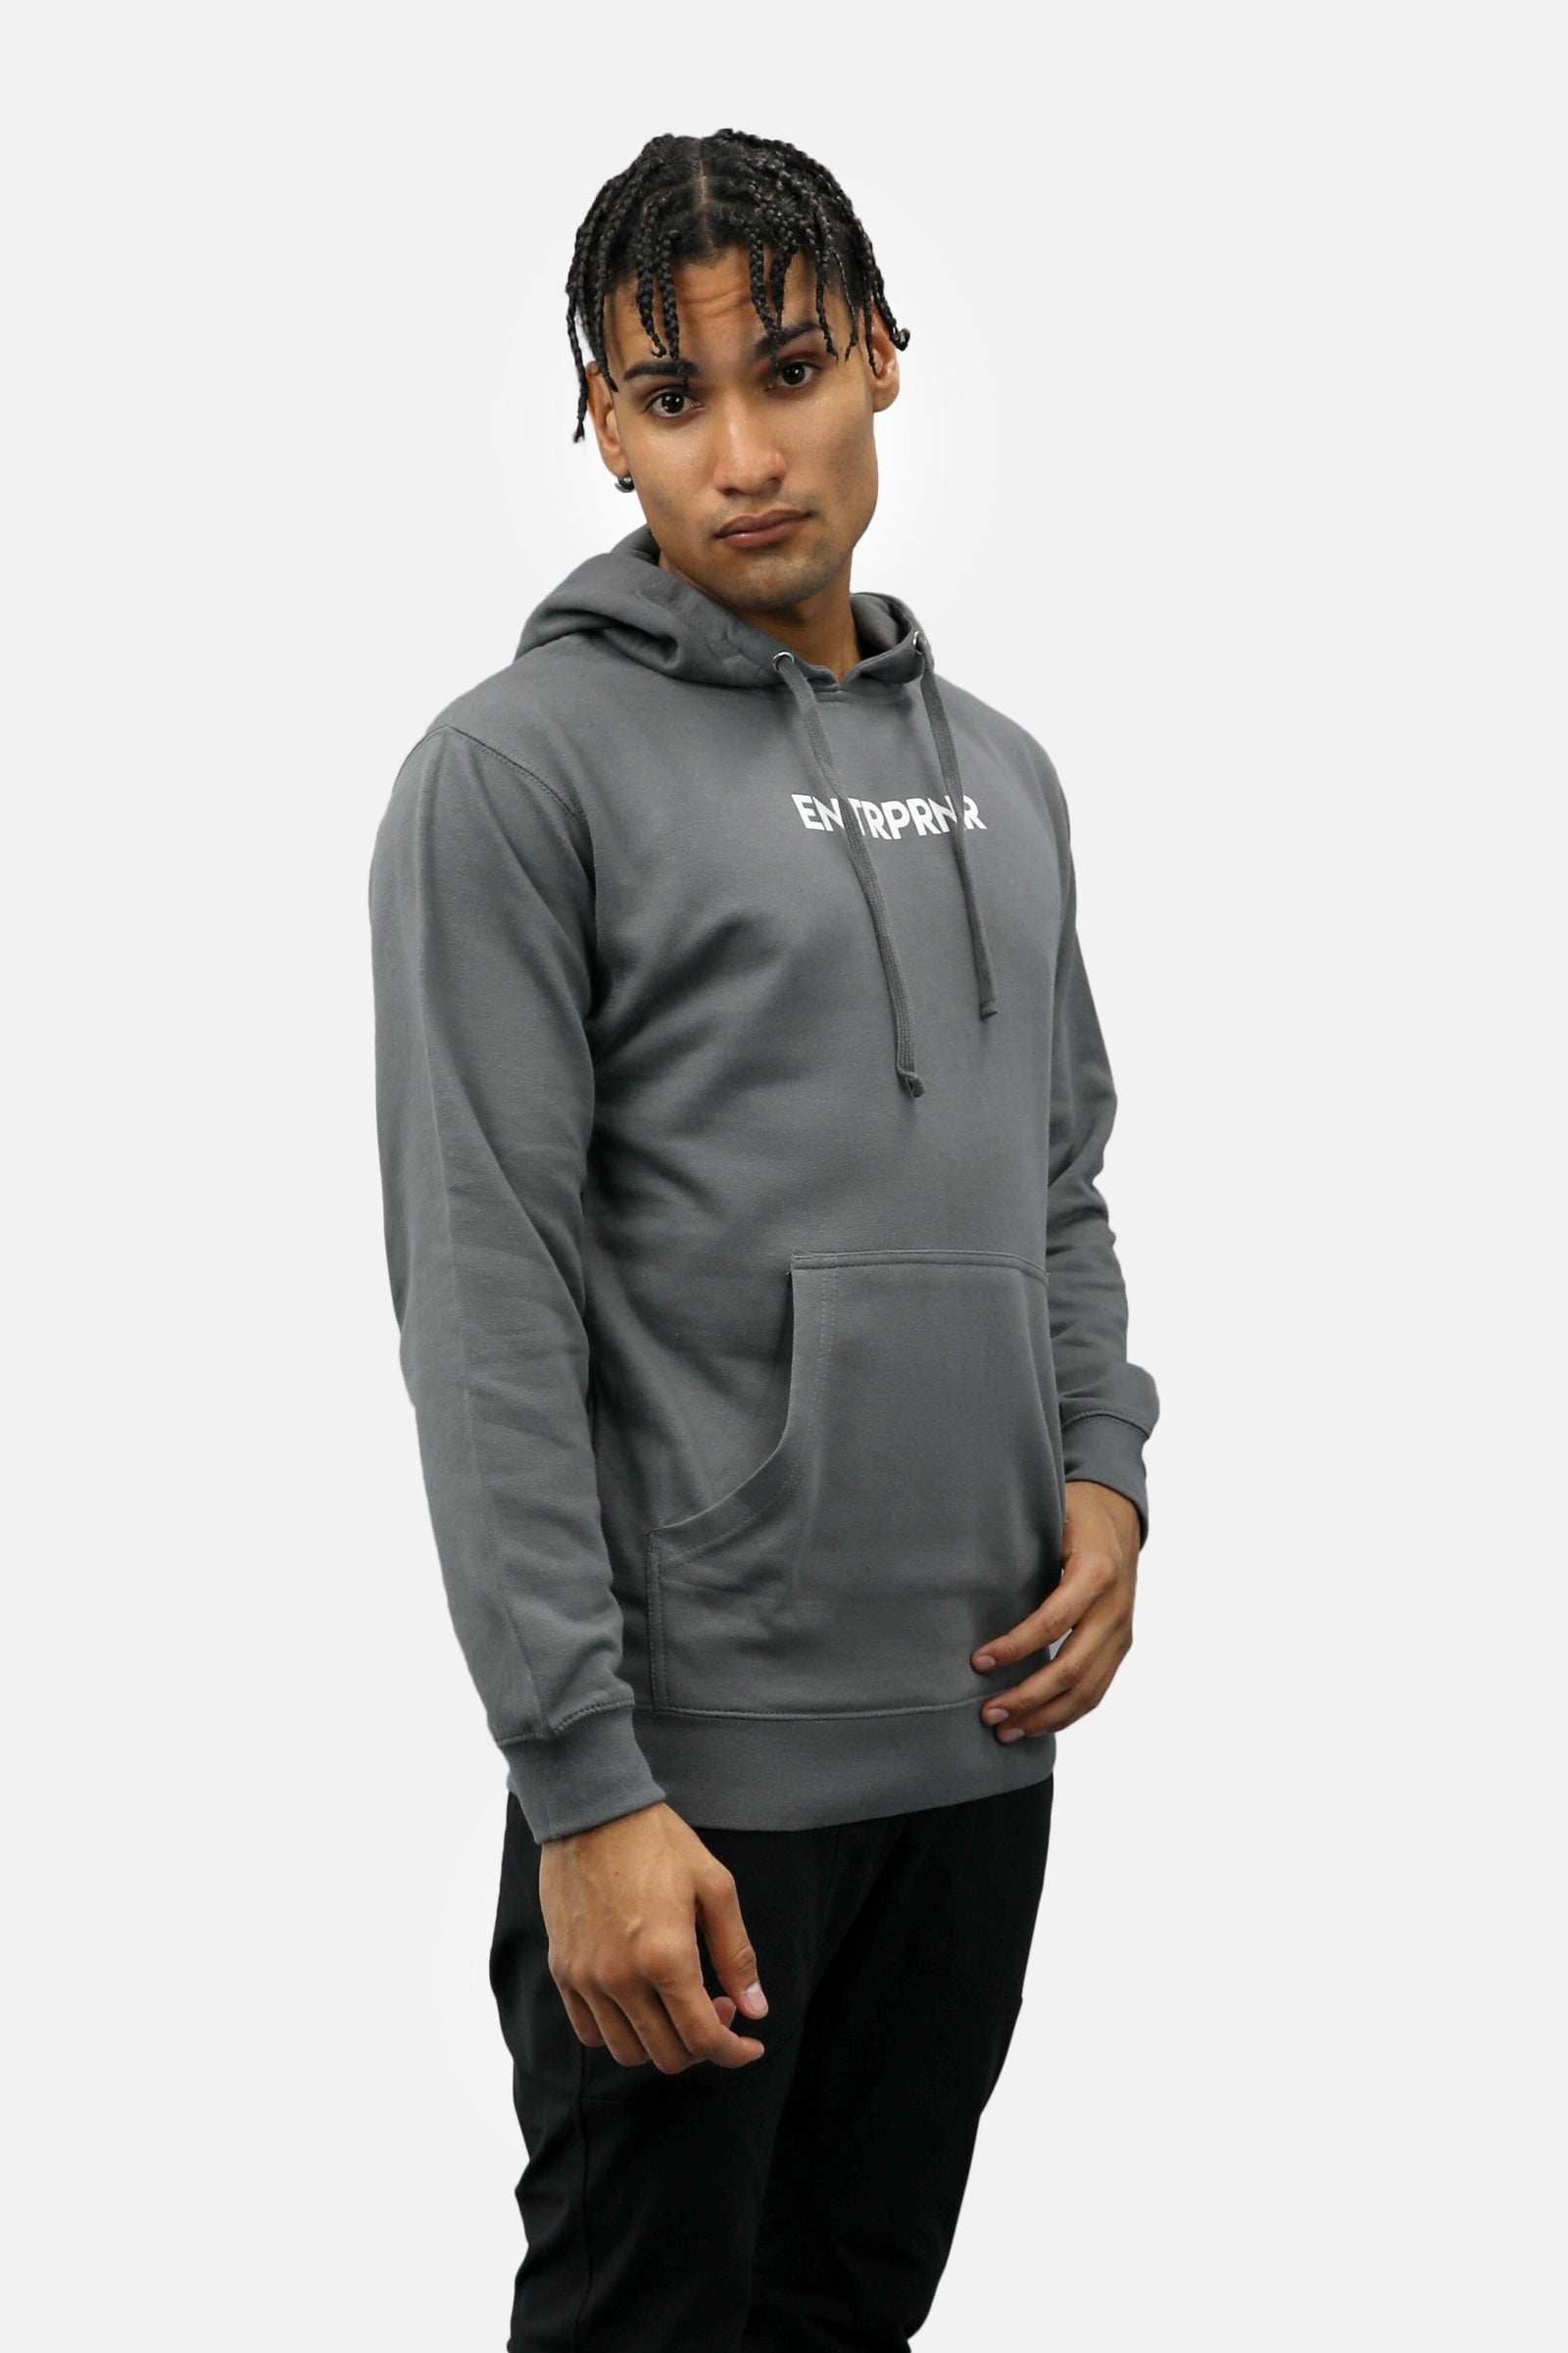 Logo ENTRPRNR Hoodie - Charcoal - ENTRPRNR® | The Entrepreneur's Clothing Brand. | Stagnancy is the Enemy. Action is King.